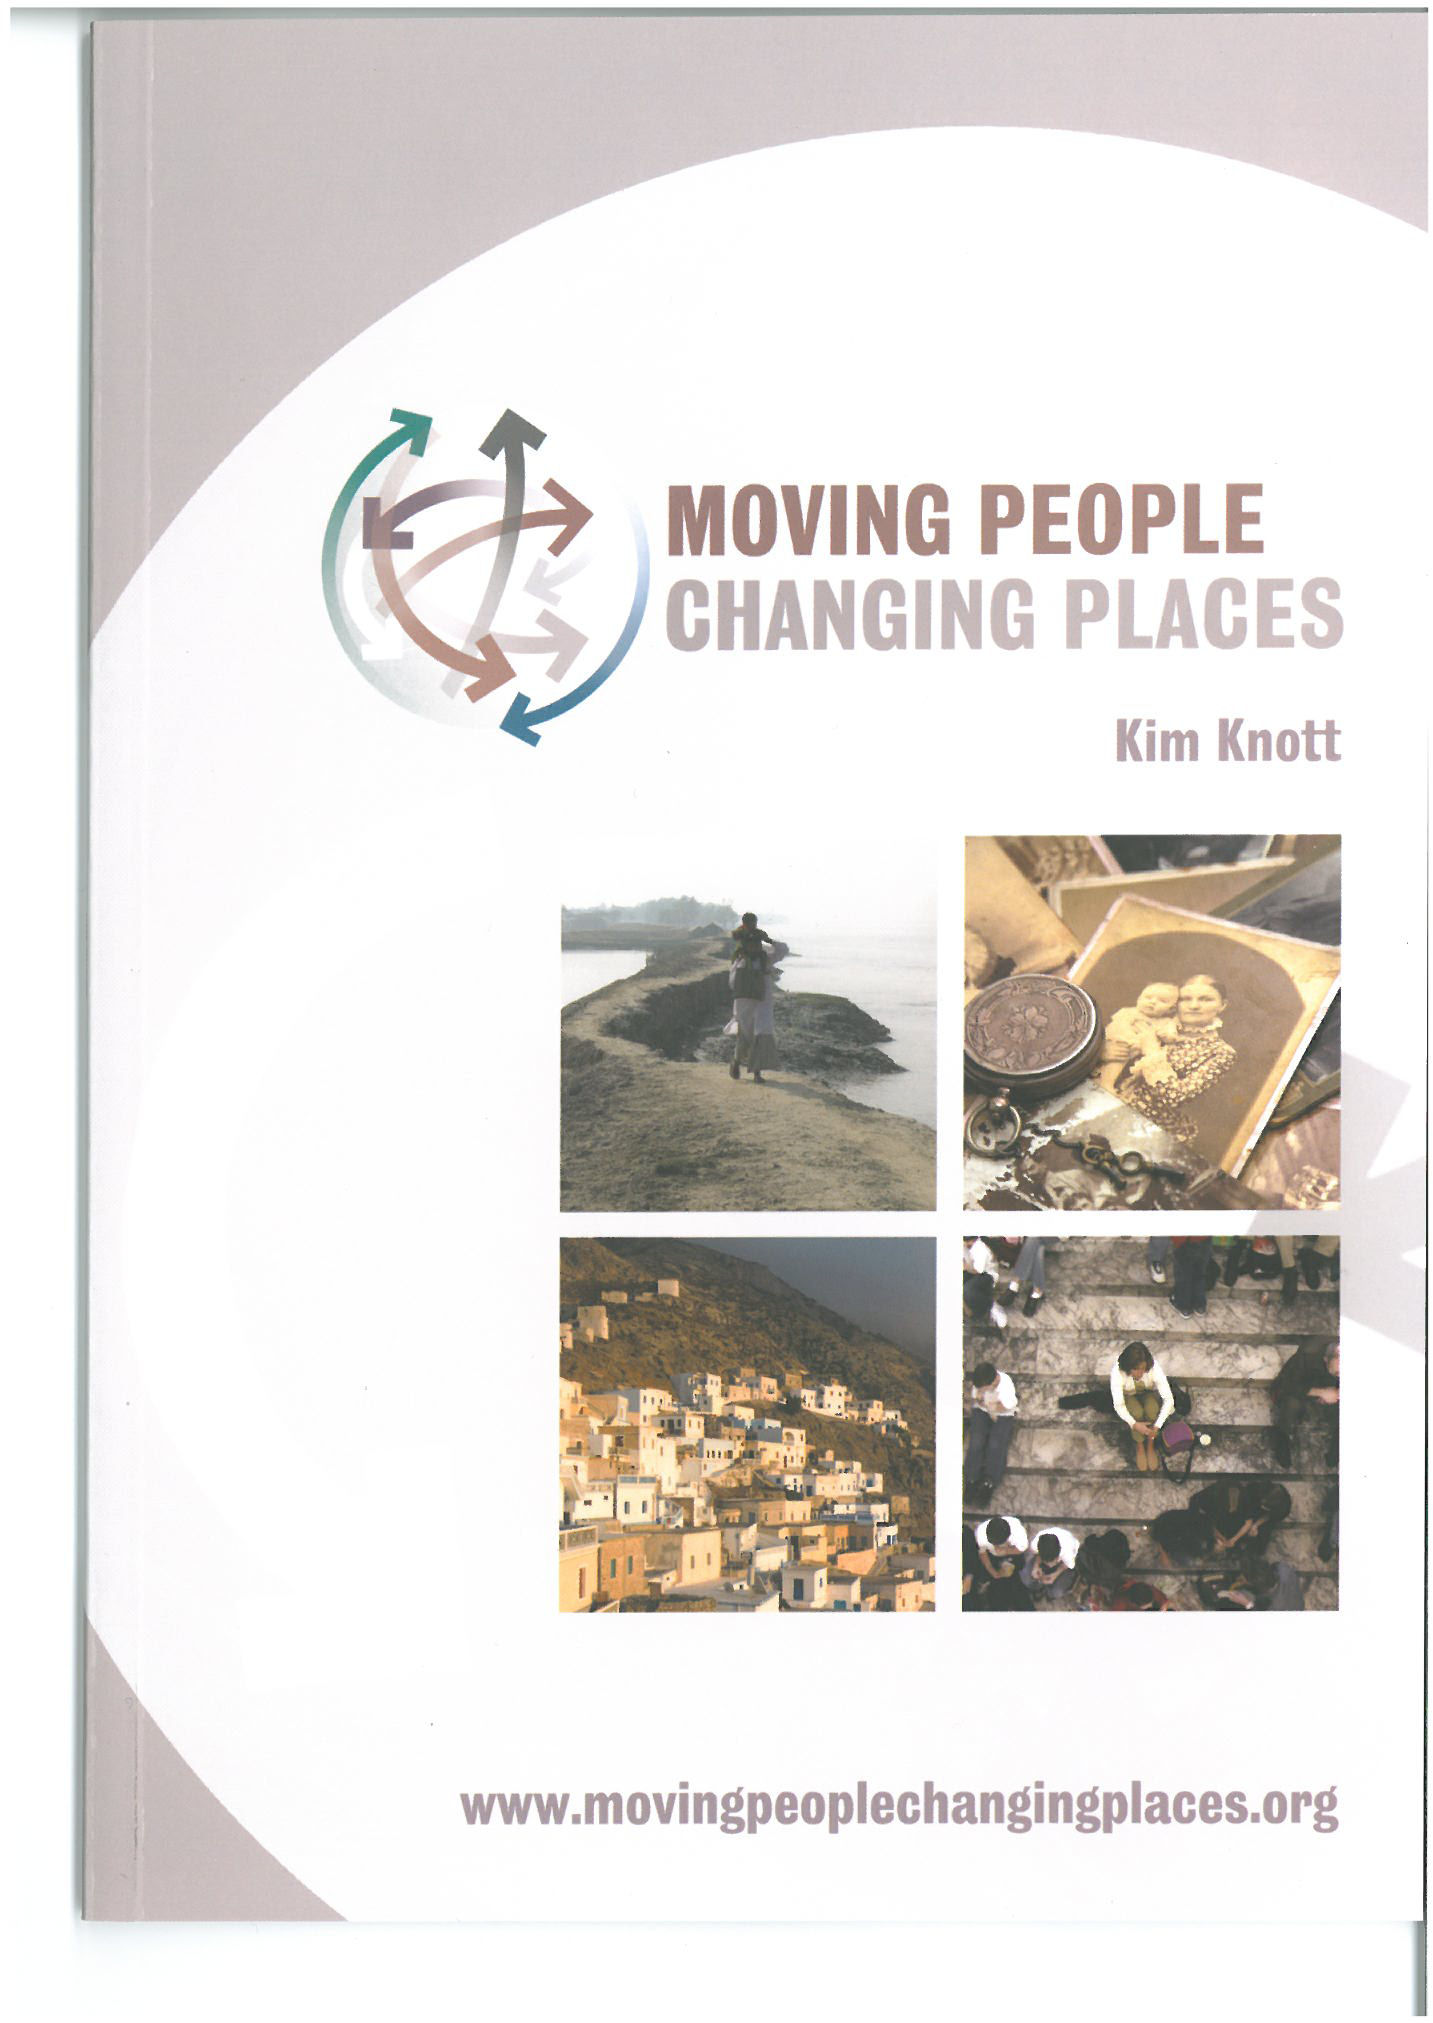 Moving People Changing Places